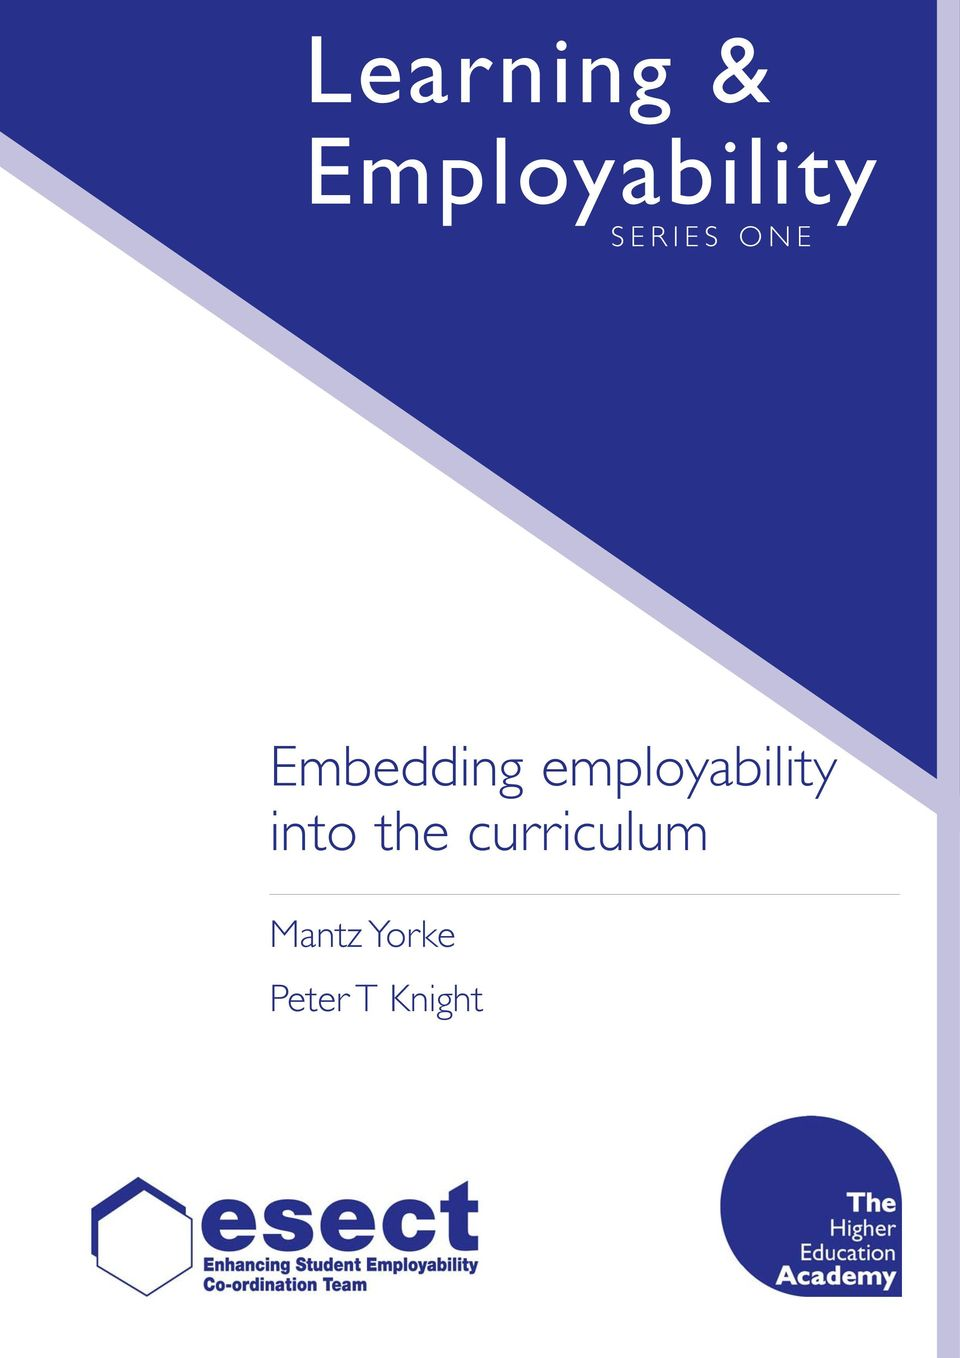 employability into the